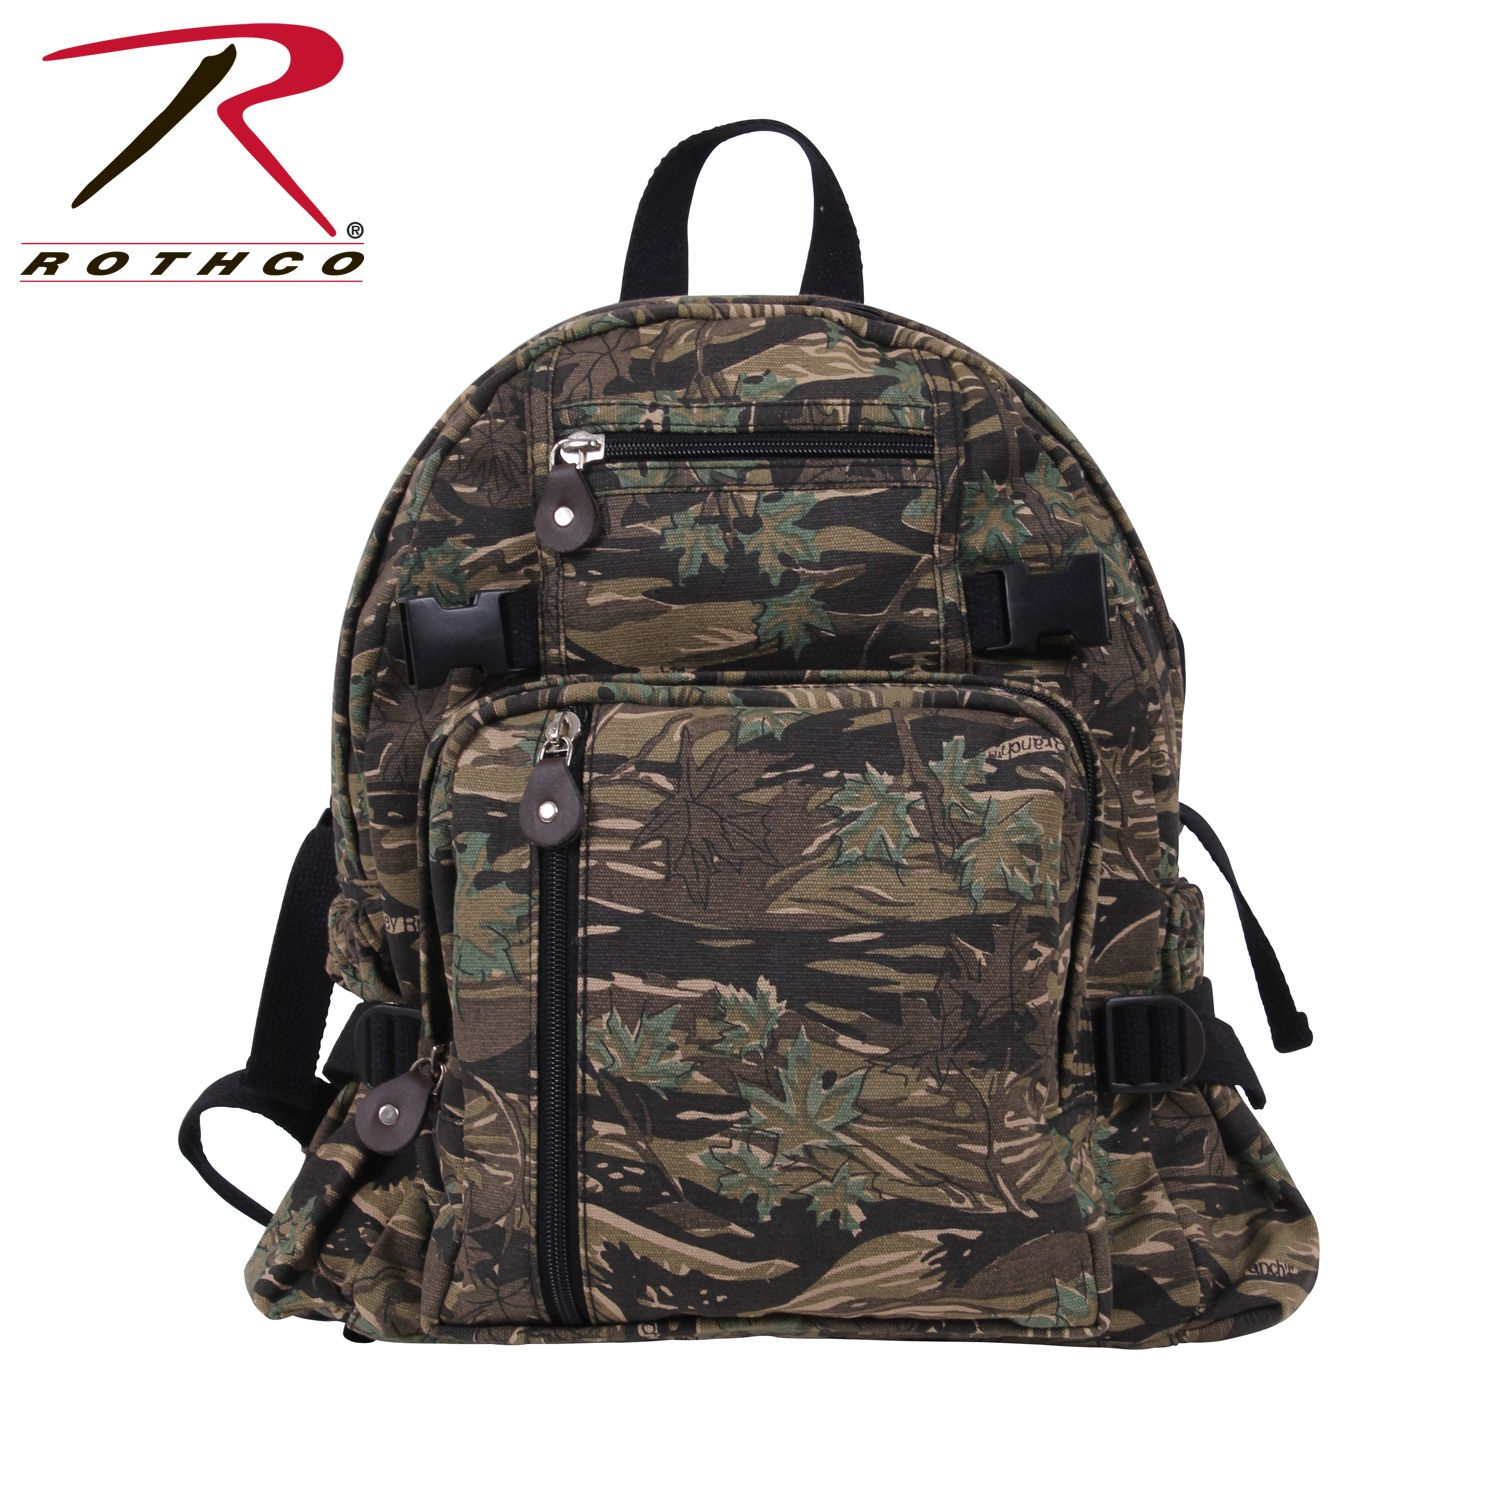 d407d84dca92 Buy Rothco Vintage Canvas Compact Backpack - Rothco Online at Best ...